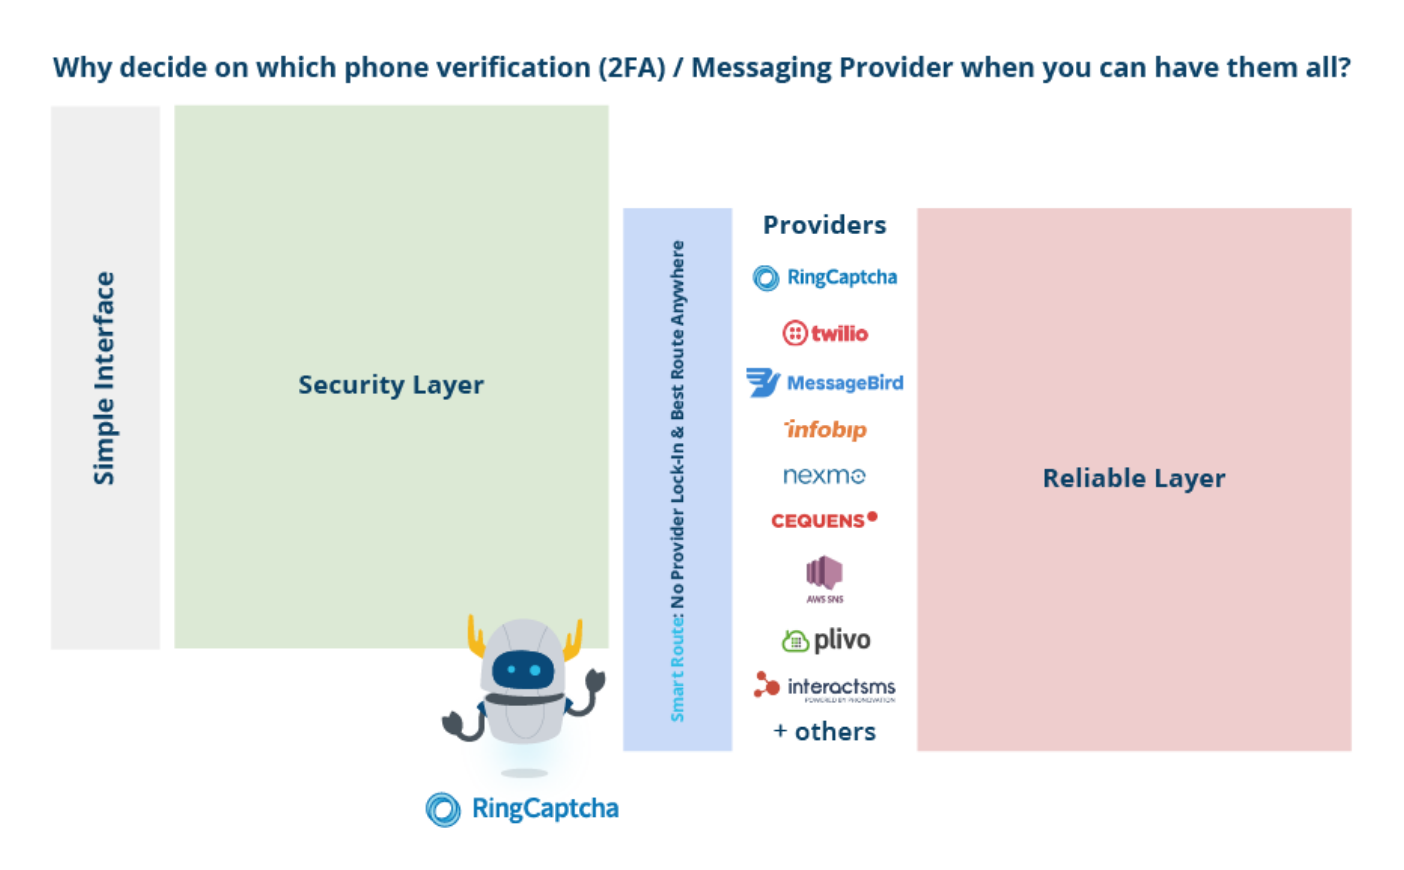 RingCaptcha Demo - Why Decide On A Provider When You Can Have Them All Through RingCaptcha